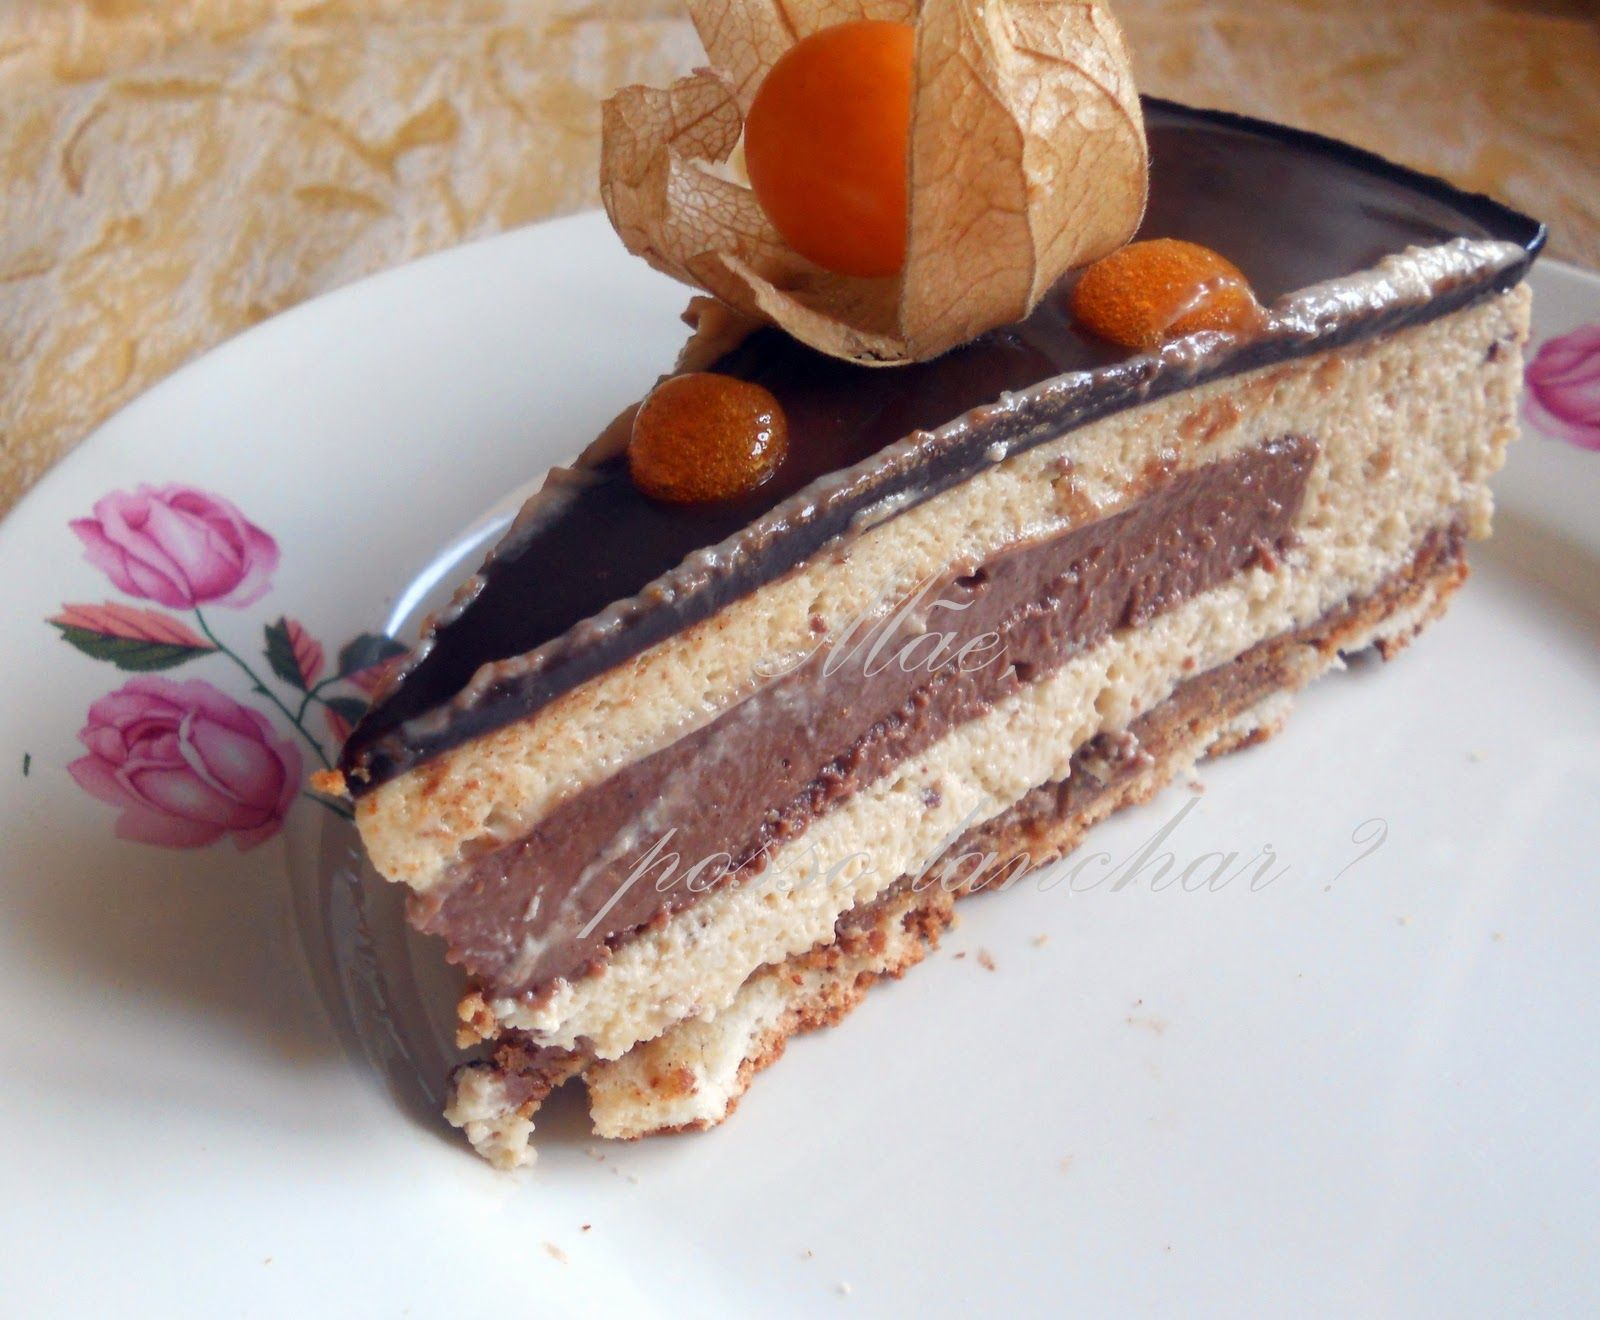 Chestnut and chocolate entremet